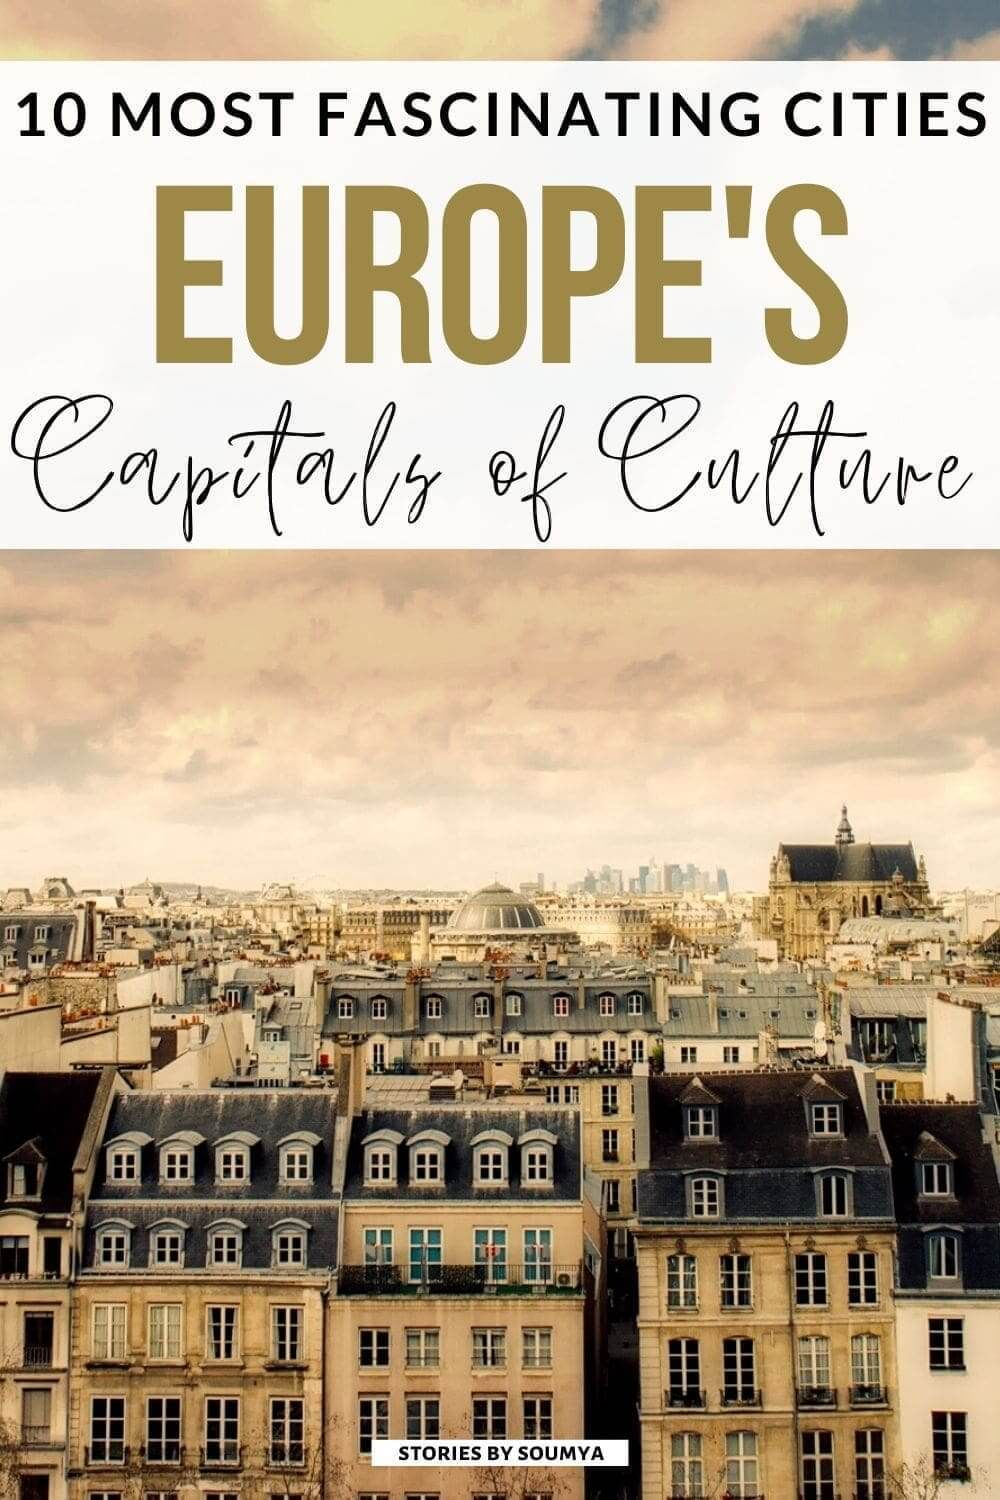 Top 10 European Capitals Of Culture That You Need To Visit Stories By Soumya Europe Travel Europe Trip Itinerary Best Places To Travel